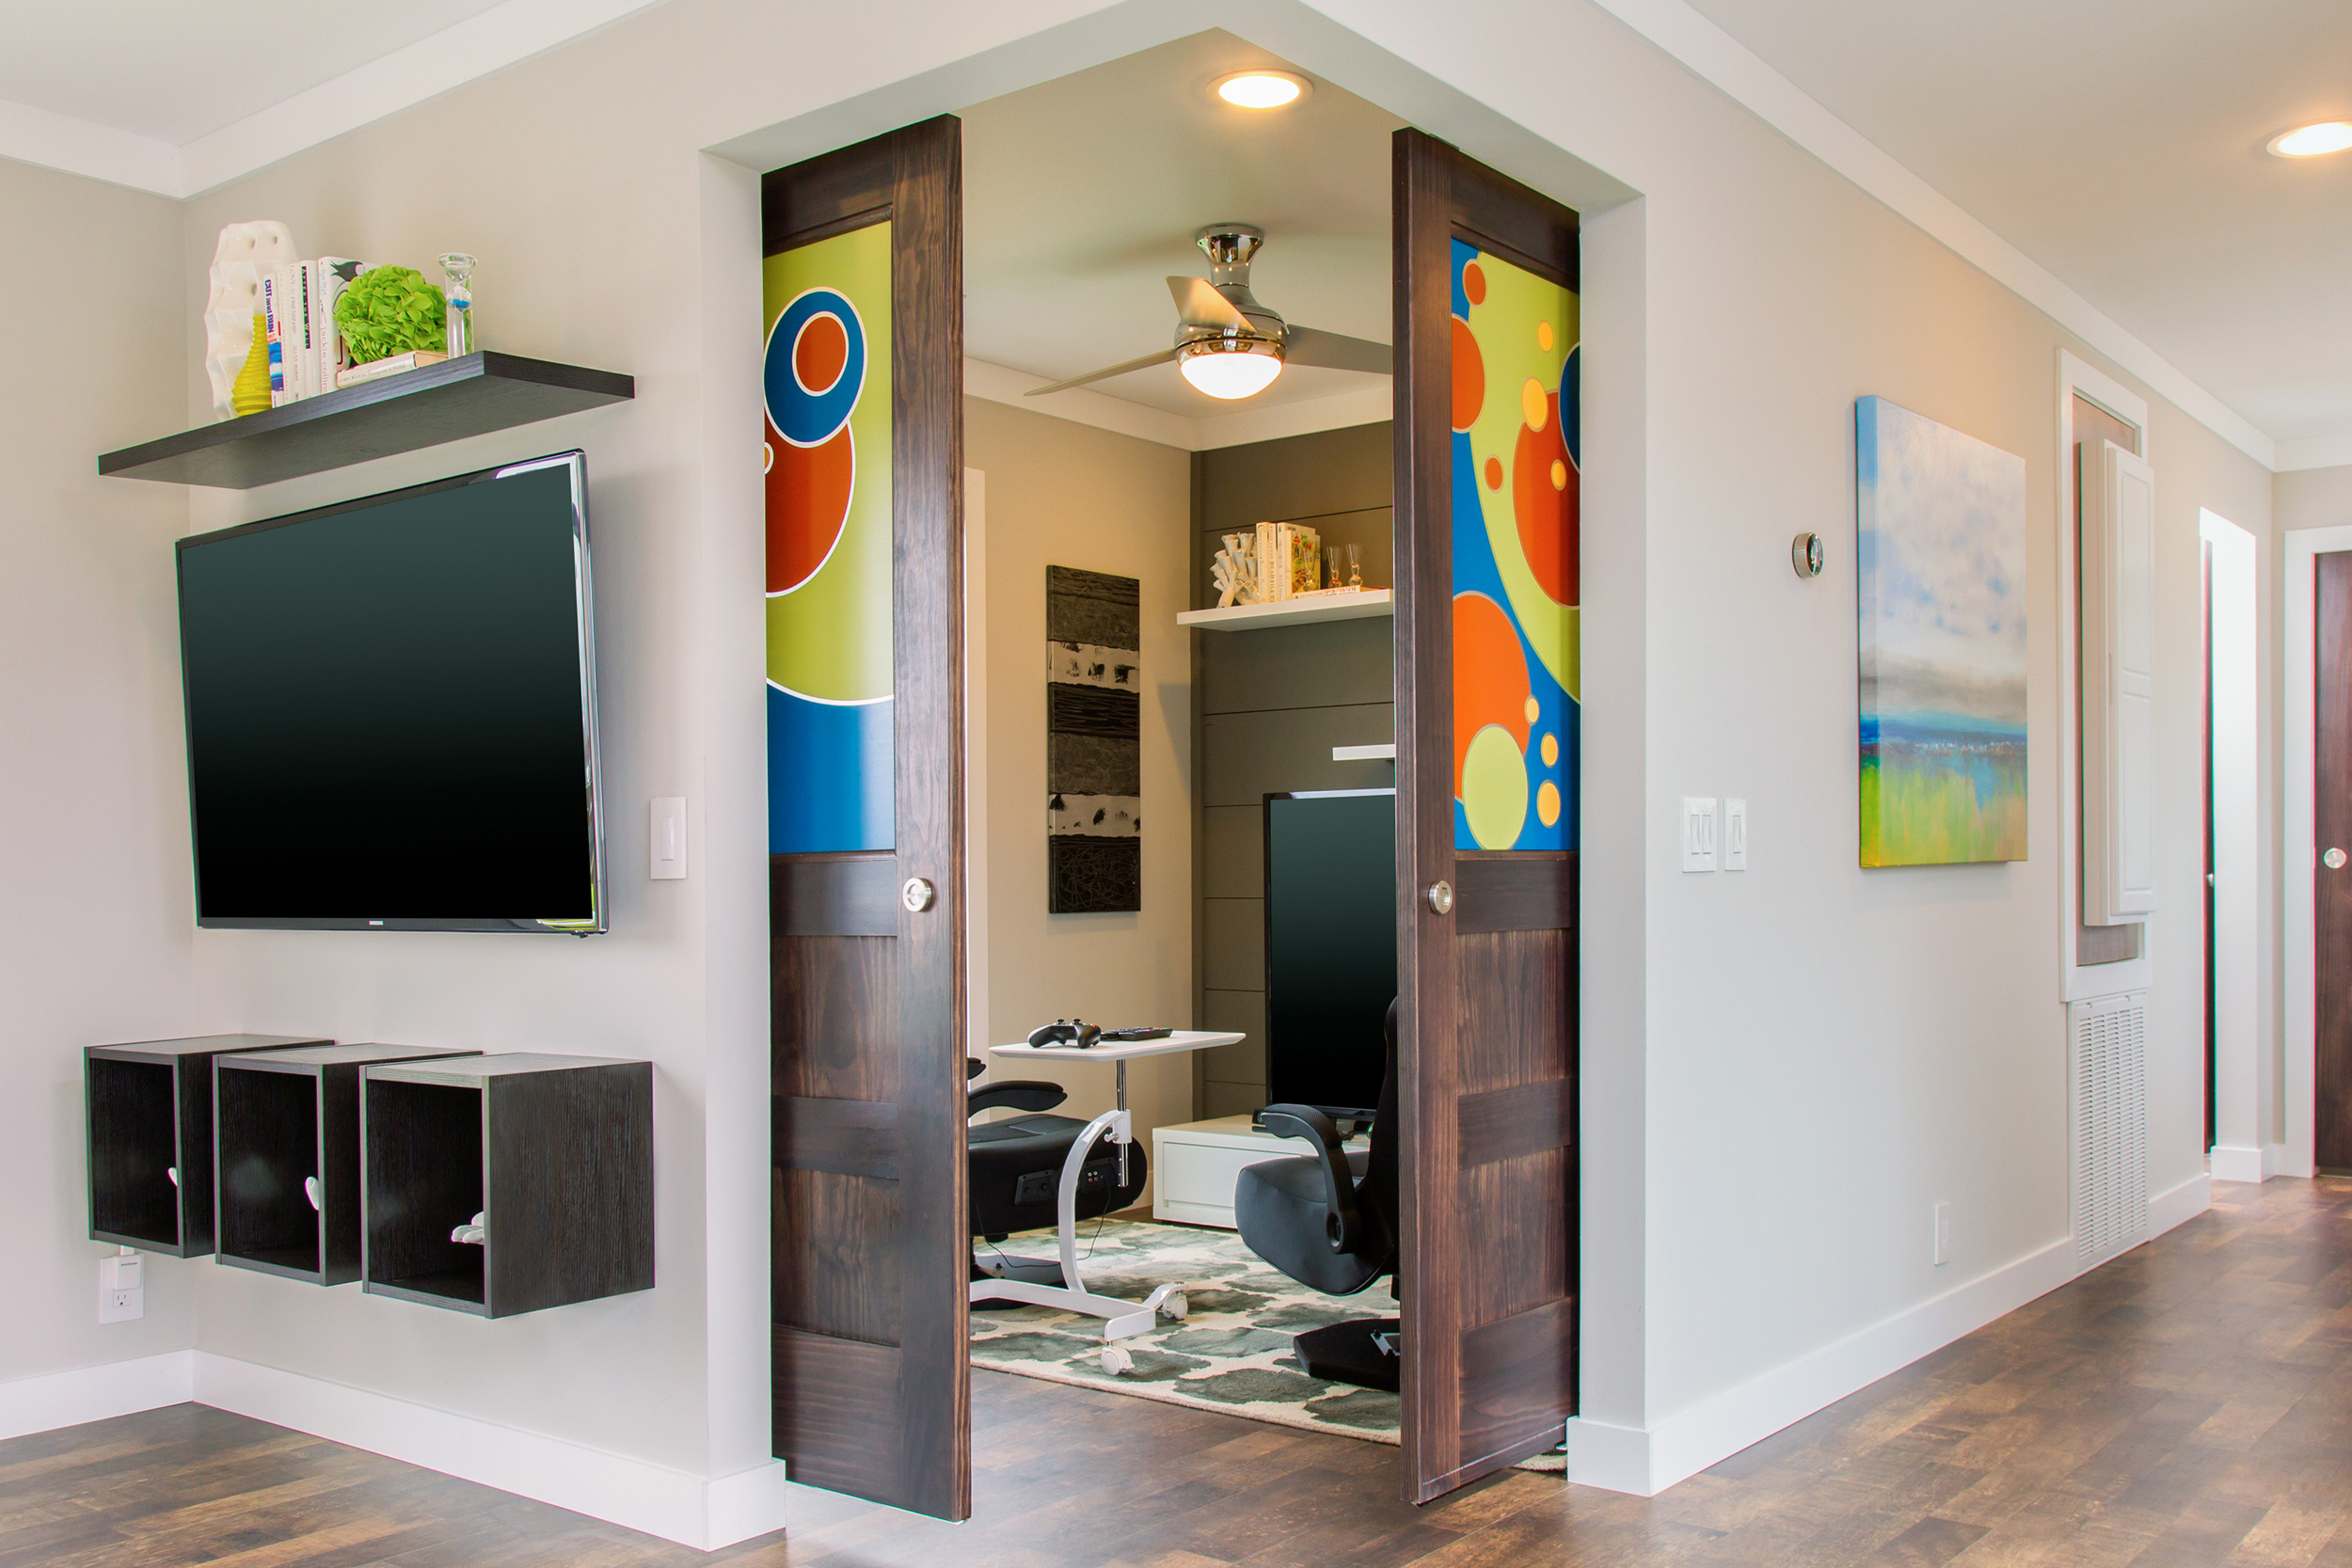 The Flex Room provides additional space that adapts with growing needs, changing from a gaming room now to a playroom in the future. (Photo: Clayton Homes)